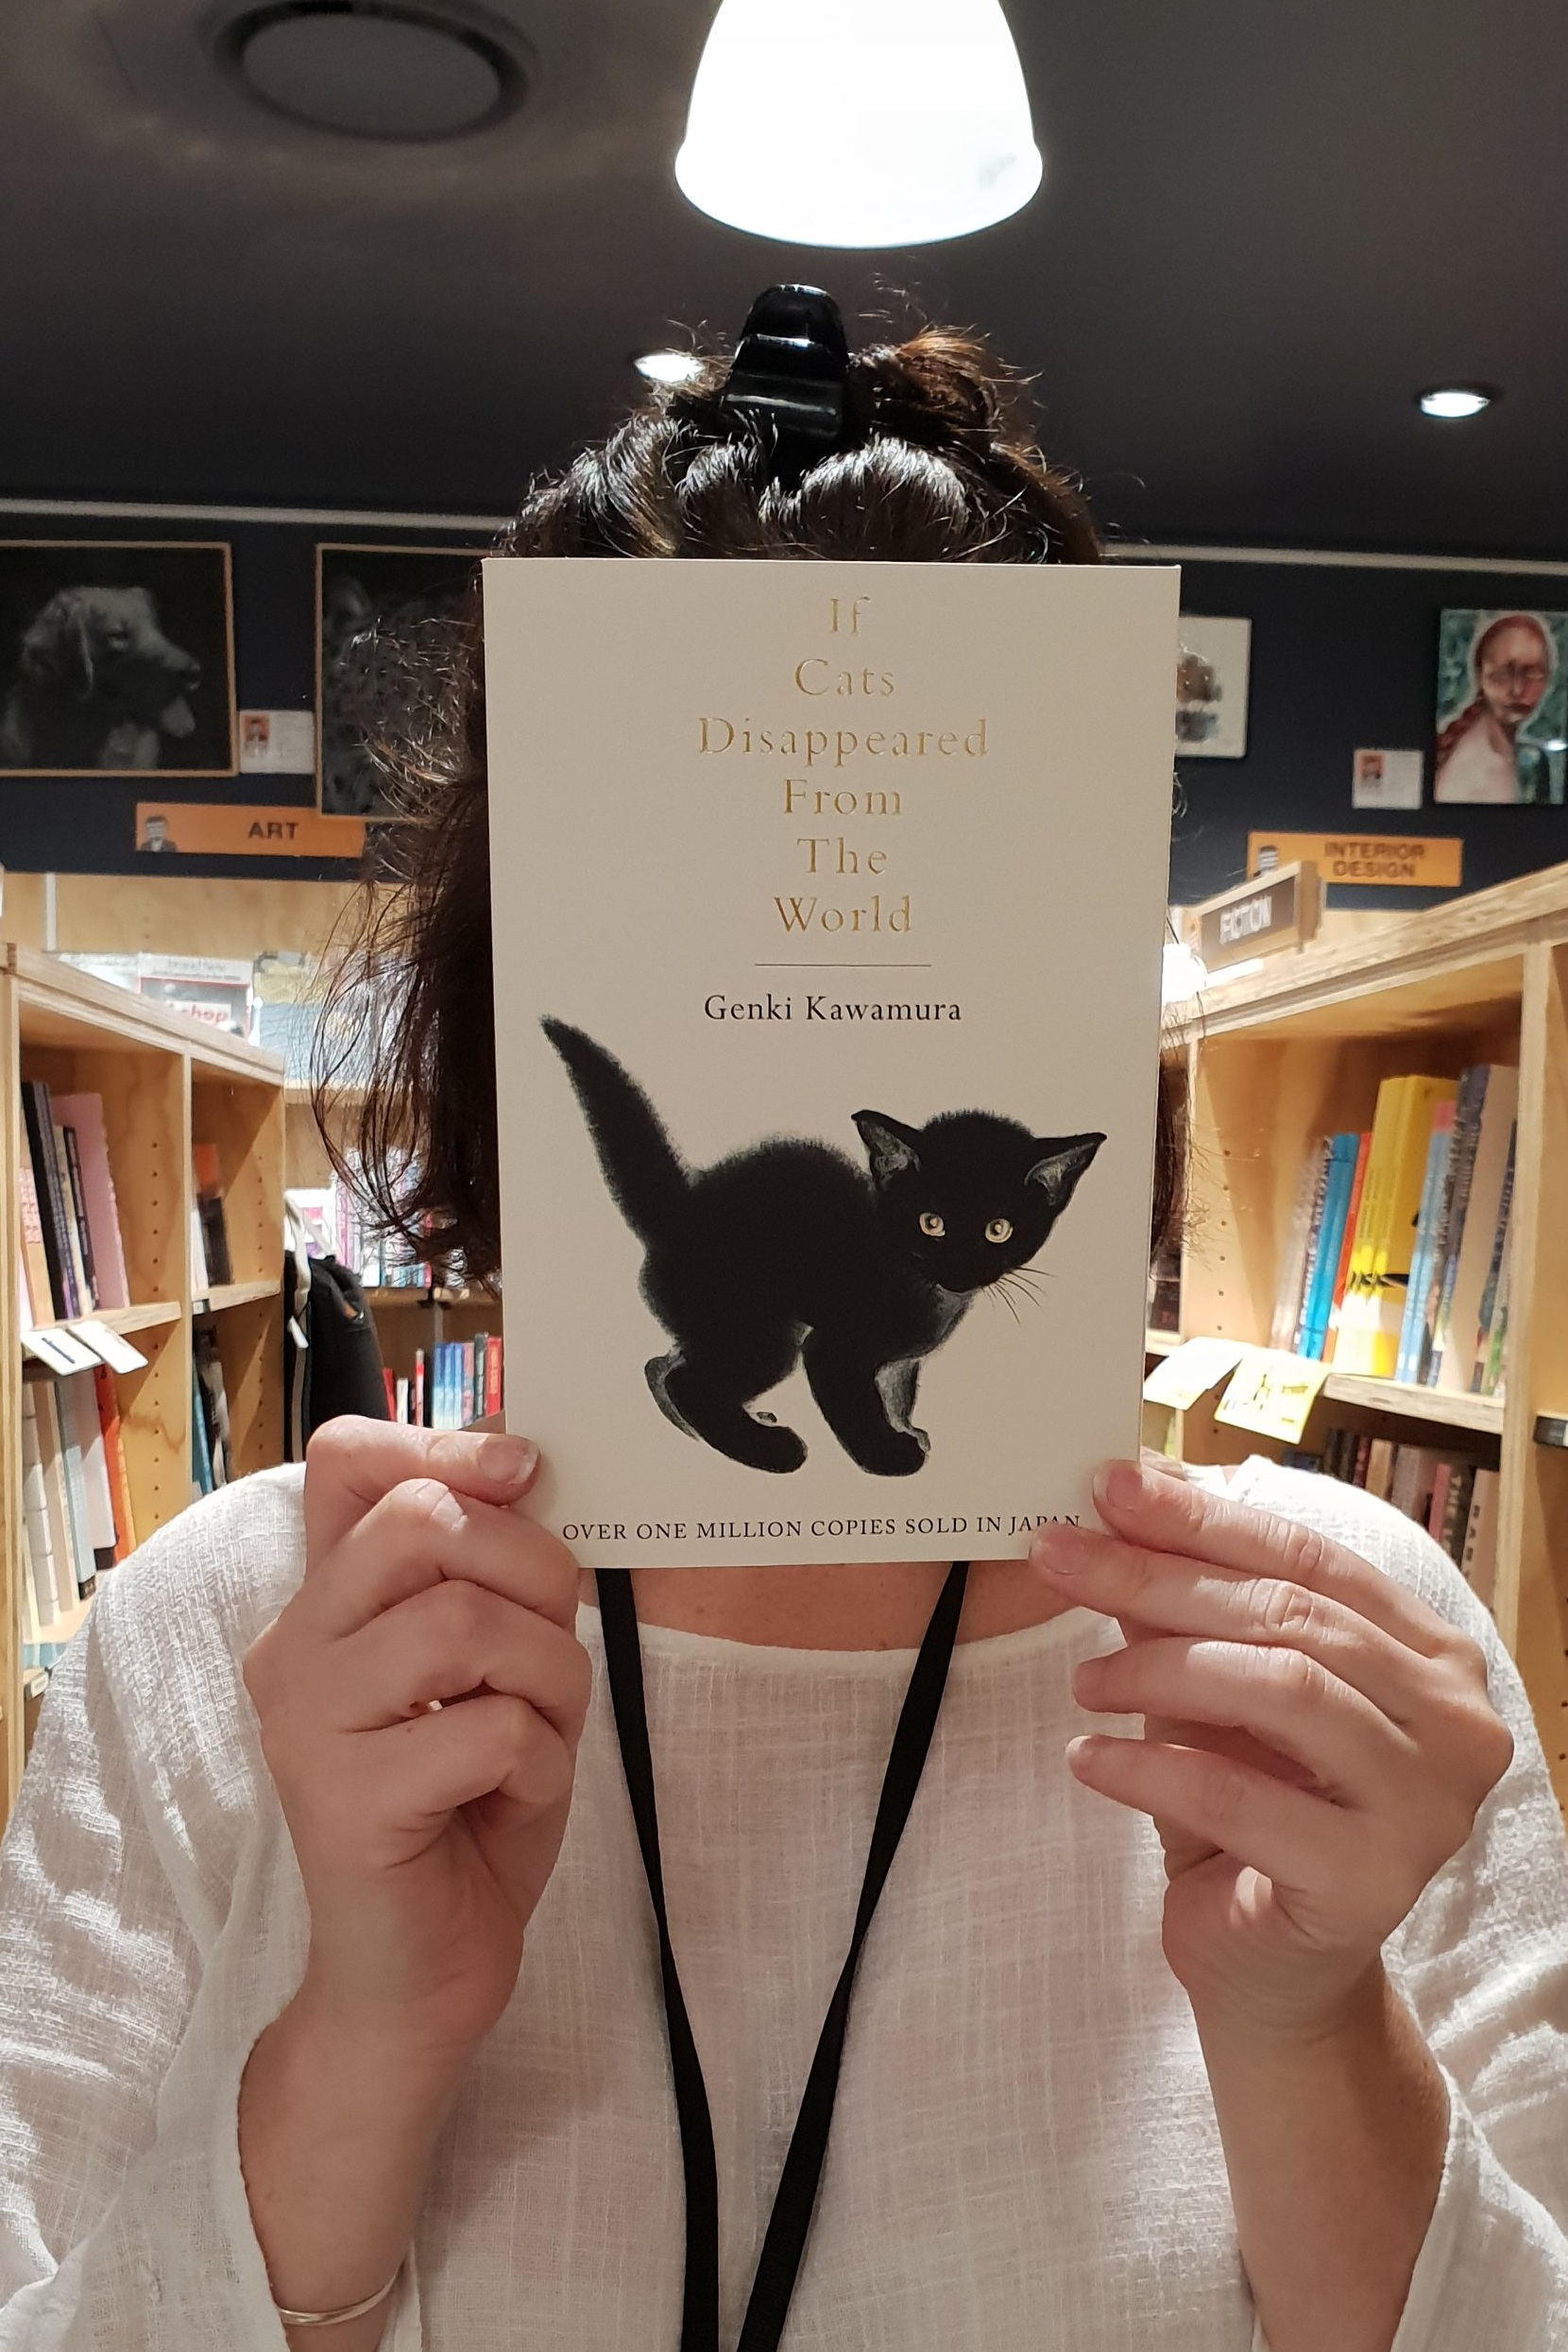 If Cats Disappeared From the World   Genki Kawamura  A short and powerful novel about a man evaluating the meaning of his life. When the narrator finds out he doesn't have much time left, the Devil appears to offer him a deal – one extra day of like for making one thing disappear from the world.  Reviewed by: Gina